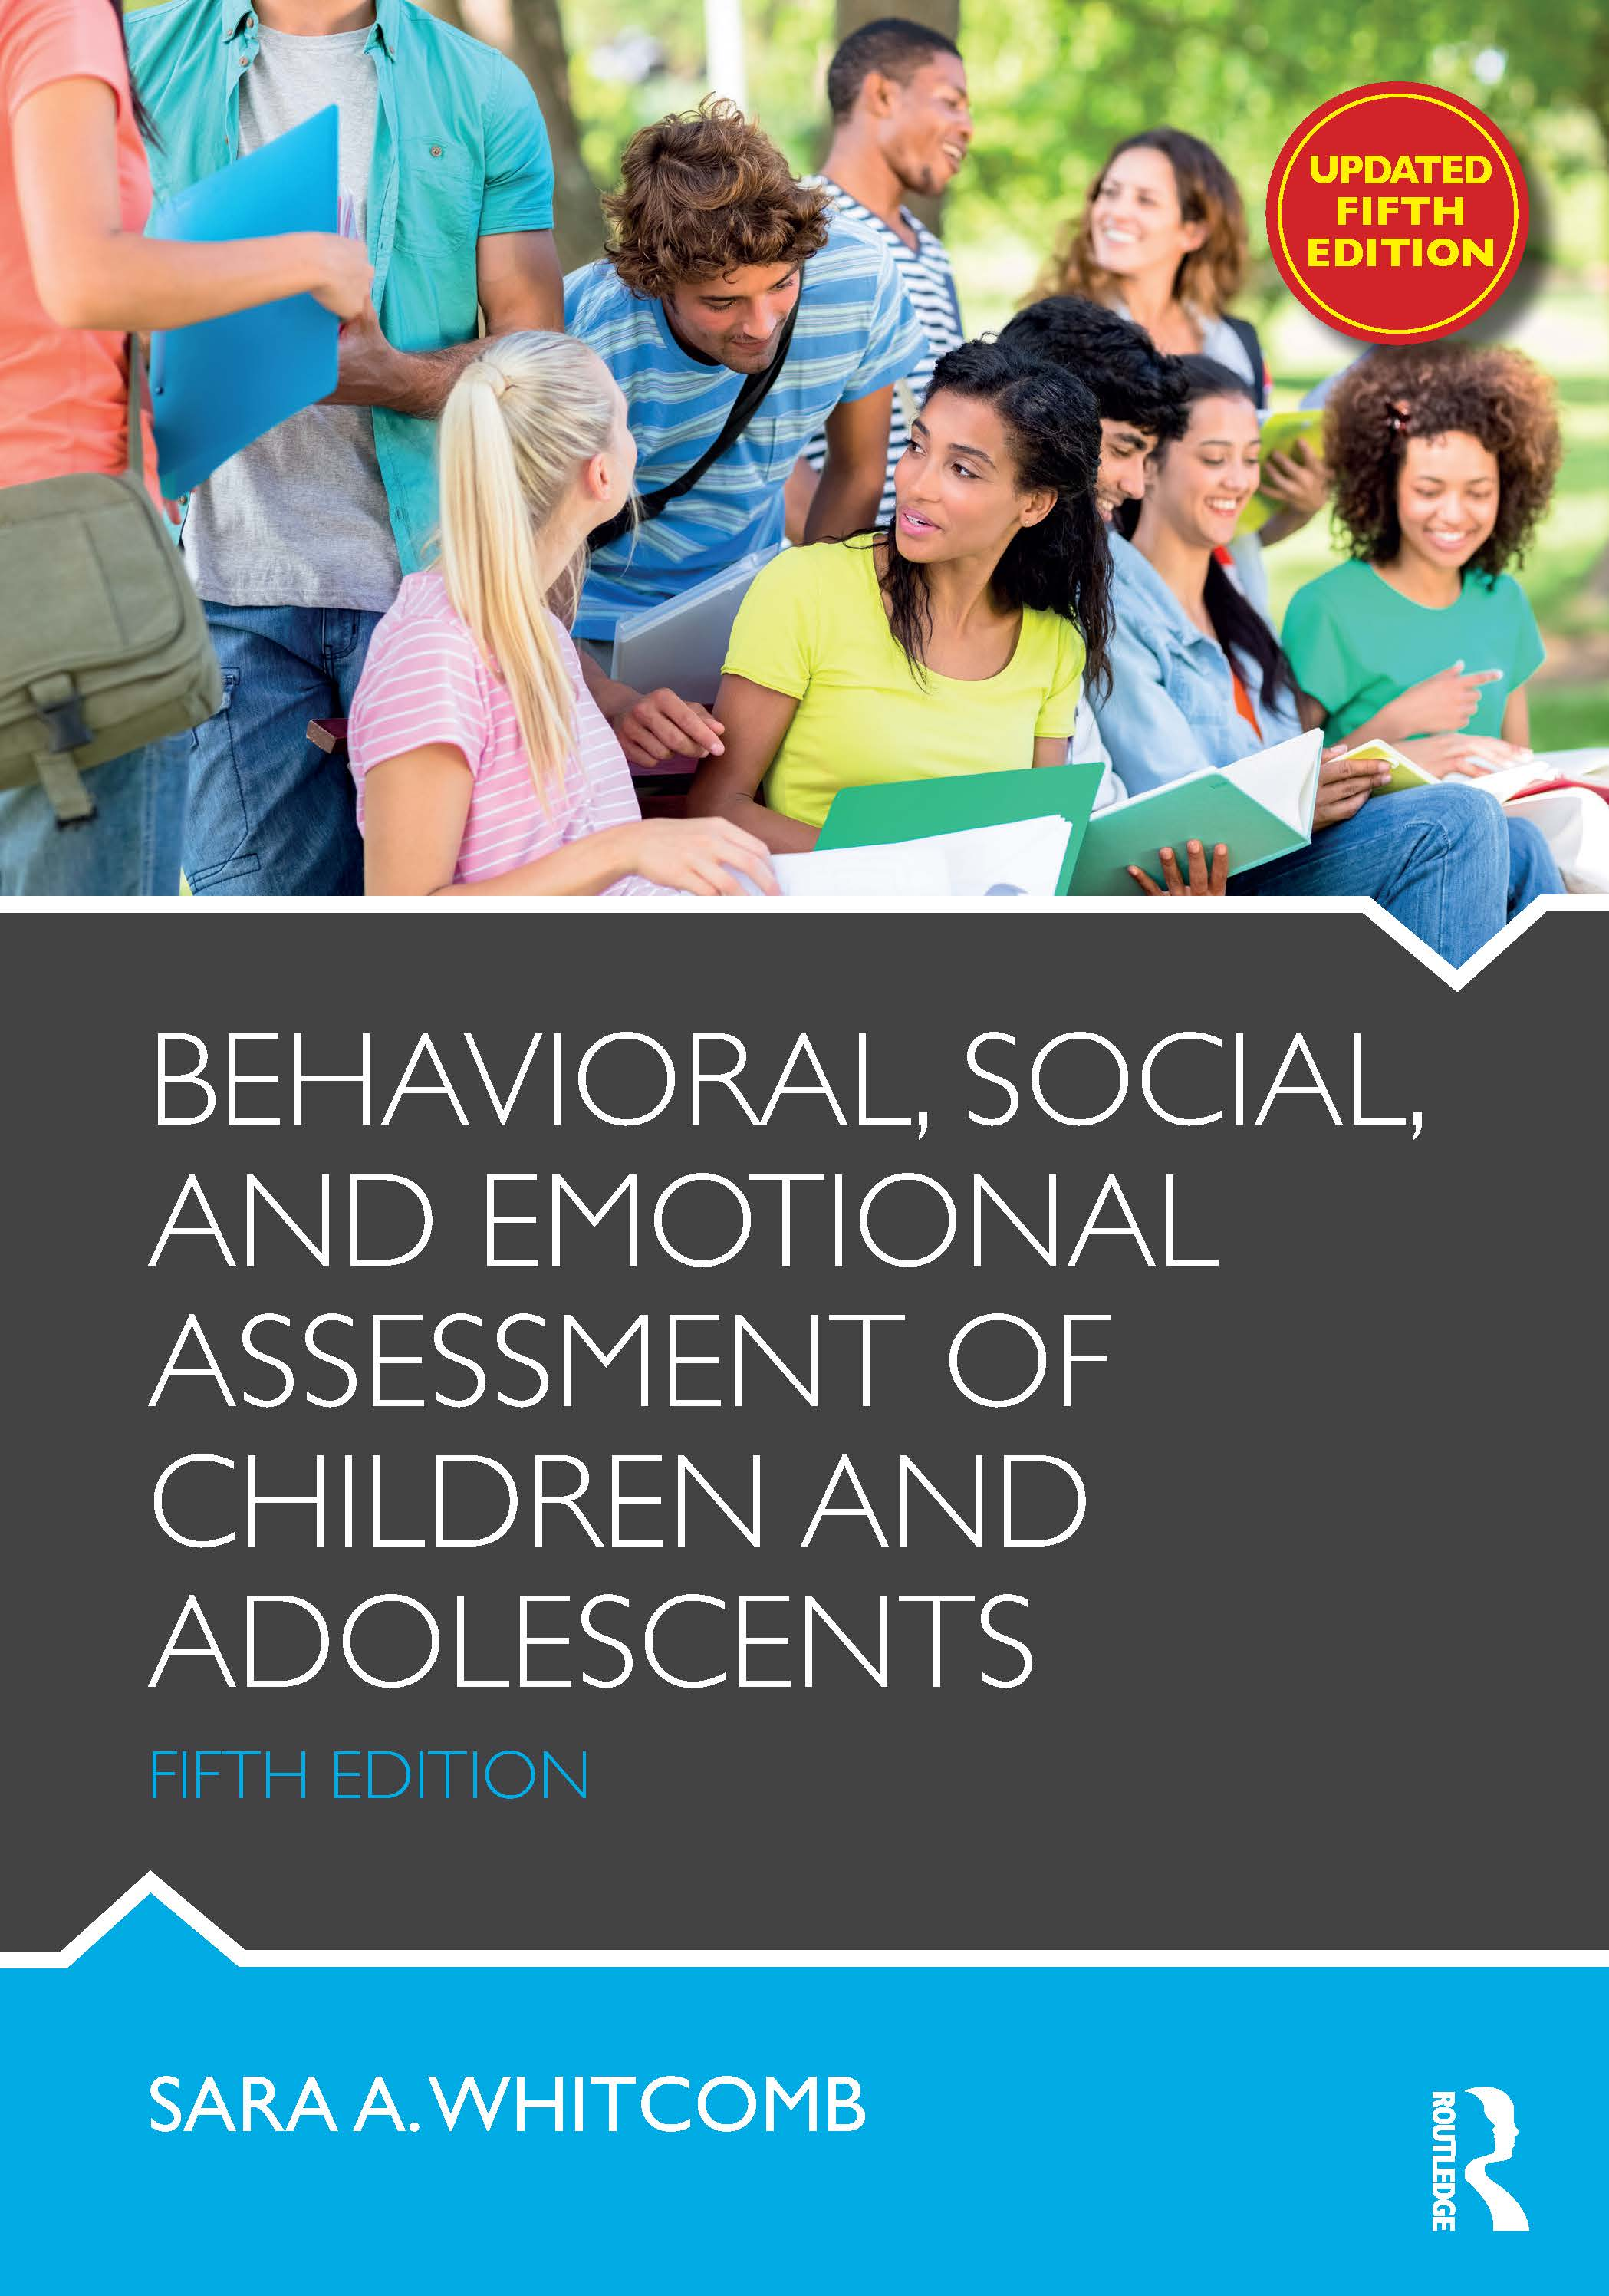 Behavioral, Social, and Emotional Assessment of Children and Adolescents: 5th Edition (Paperback) book cover